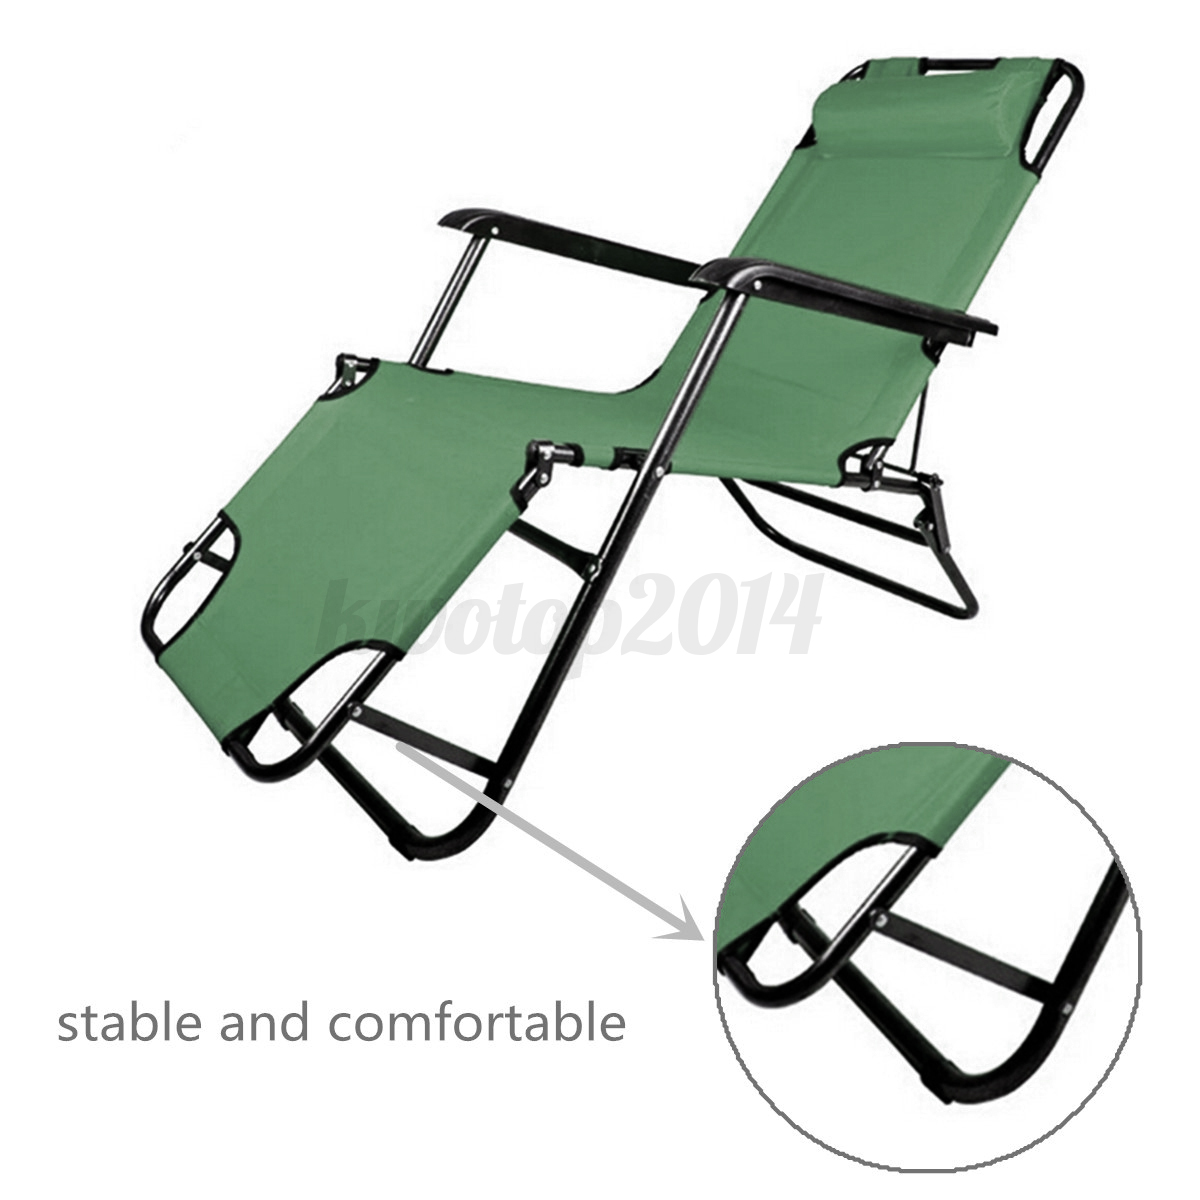 recliner lawn chairs folding ikea lucite chair us metal chaise lounge patio outdoor pool